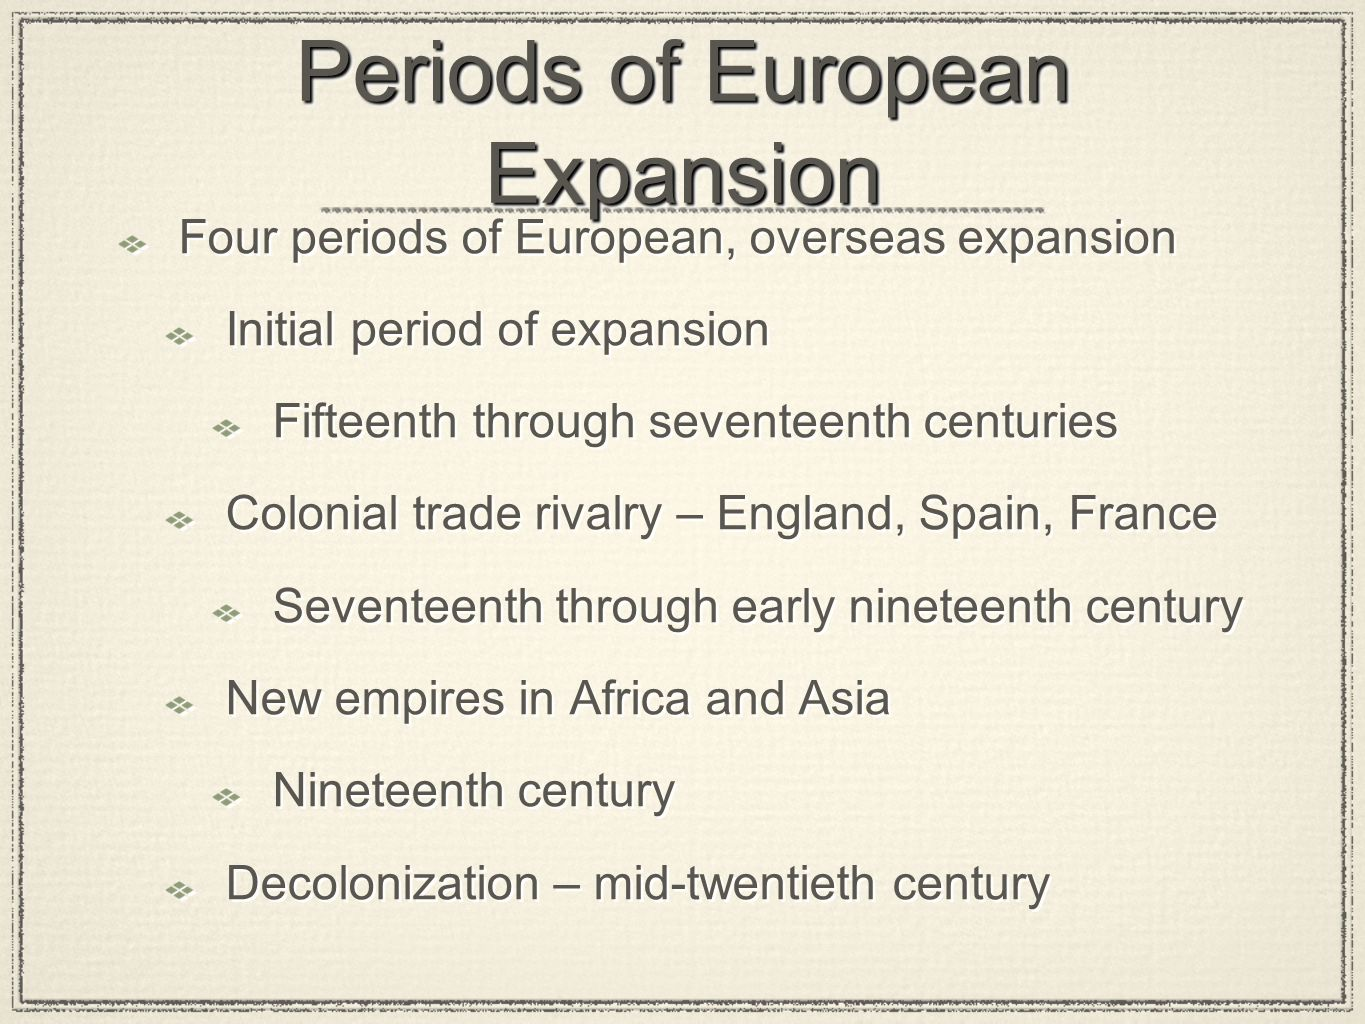 Periods of European Expansion